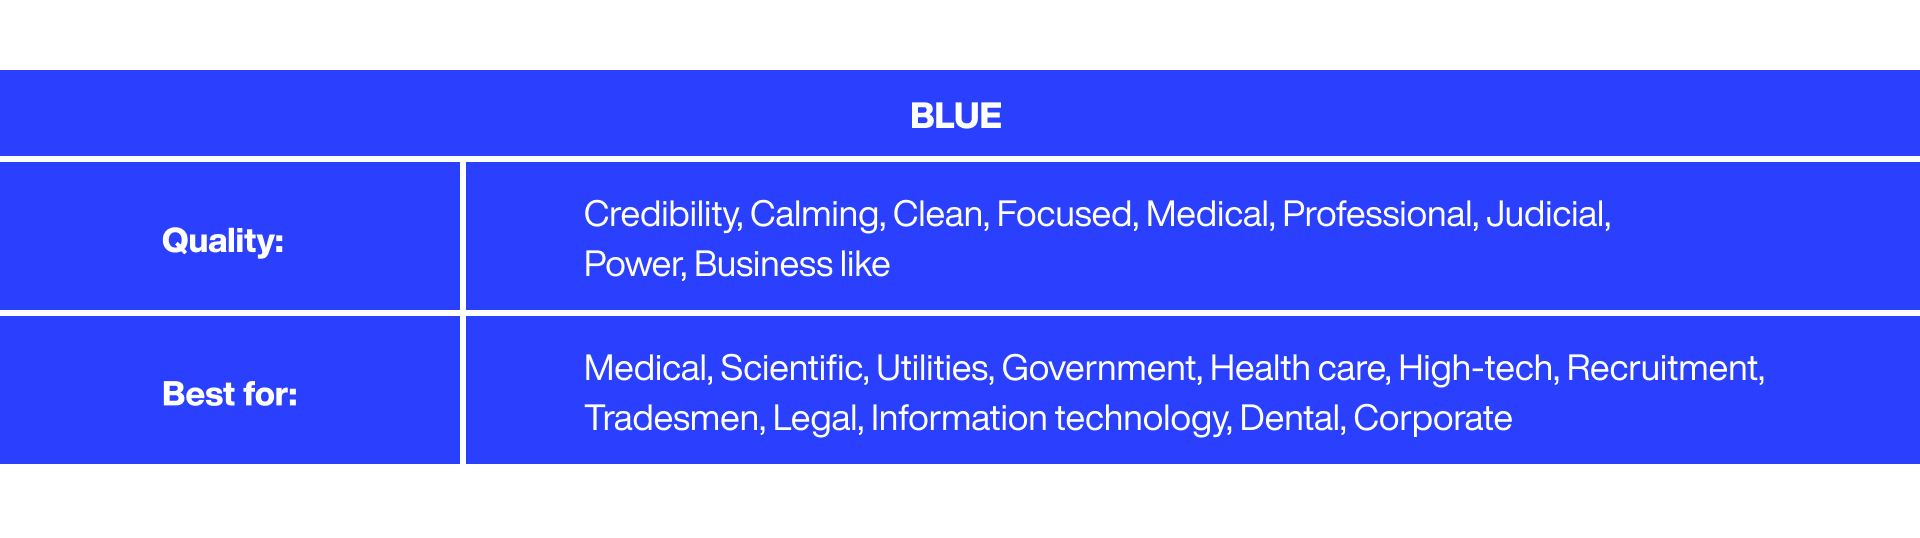 Characteristics of the color Blue